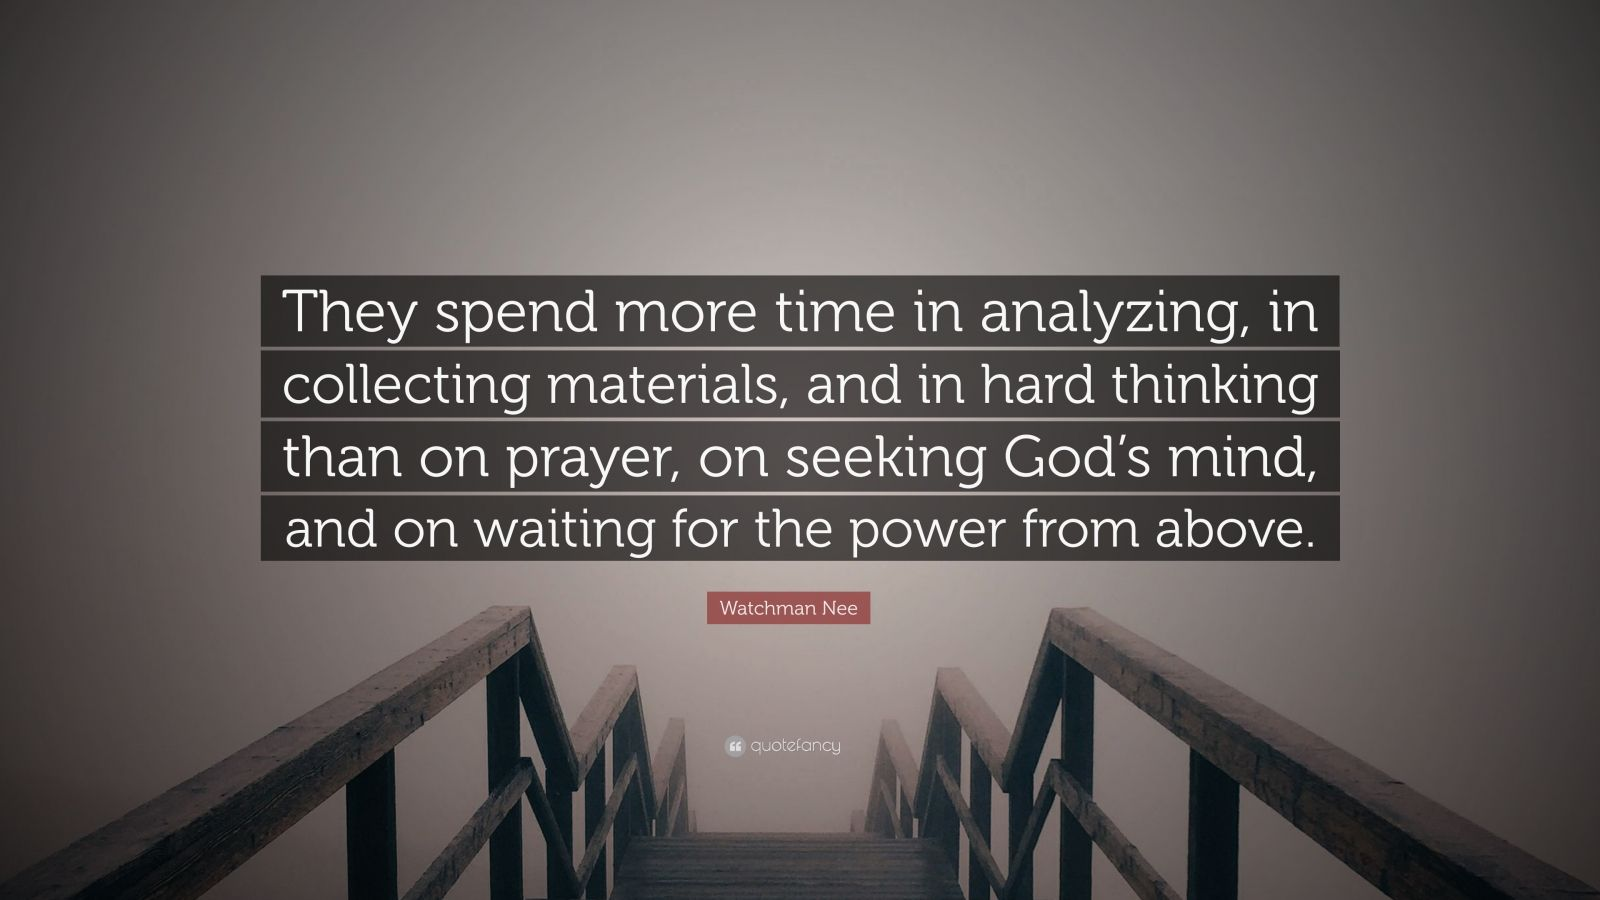 """Watchman Nee Quote: """"They spend more time in analyzing, in collecting materials, and in hard thinking than on prayer, on seeking God's mind, and on waiting for the power from above."""""""